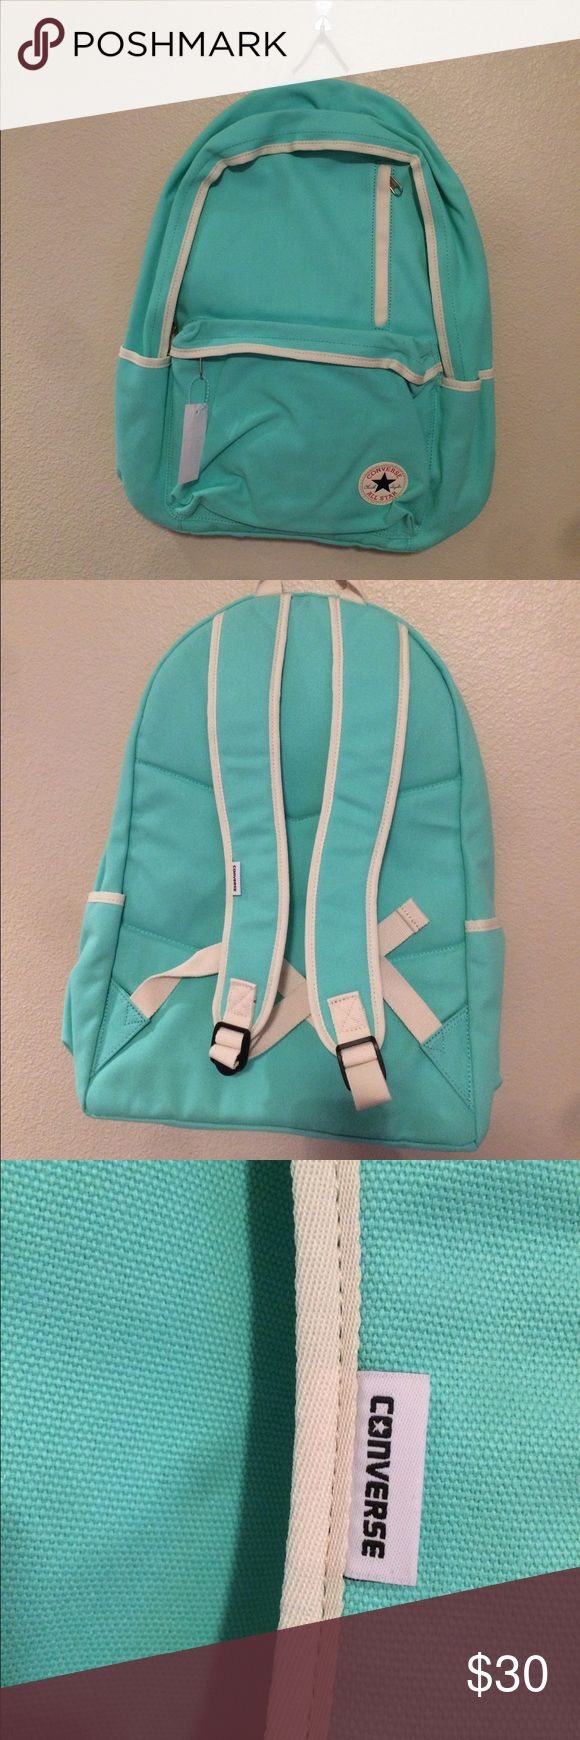 Converse Backpack Teal converse backpack with three pockets. One large pocket with two front pockets. Converse Bags Backpacks